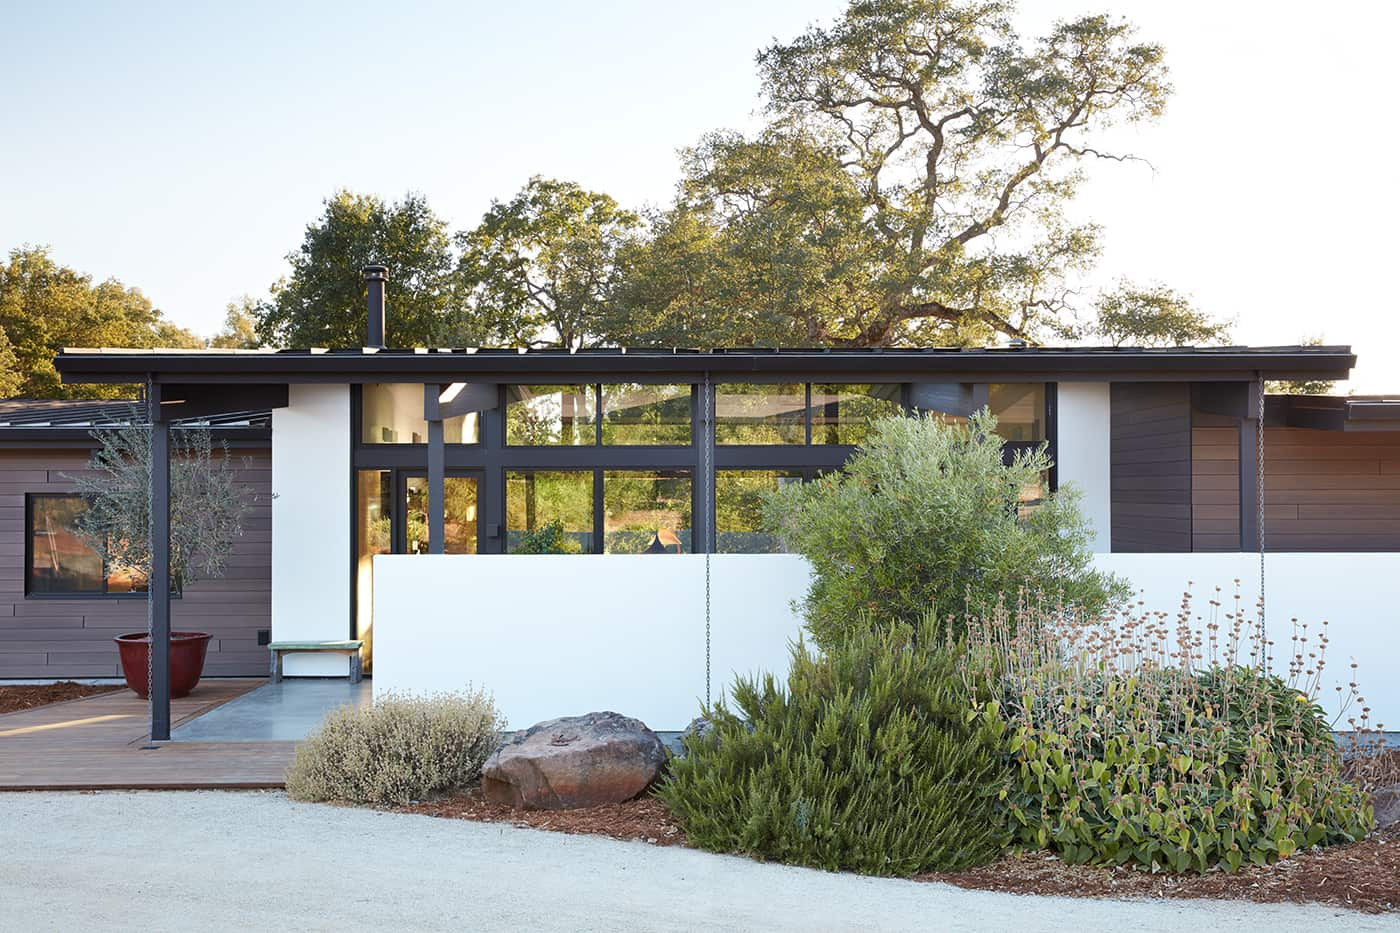 mid-century house renovation by Klopf architects in Sacramento - exterior front